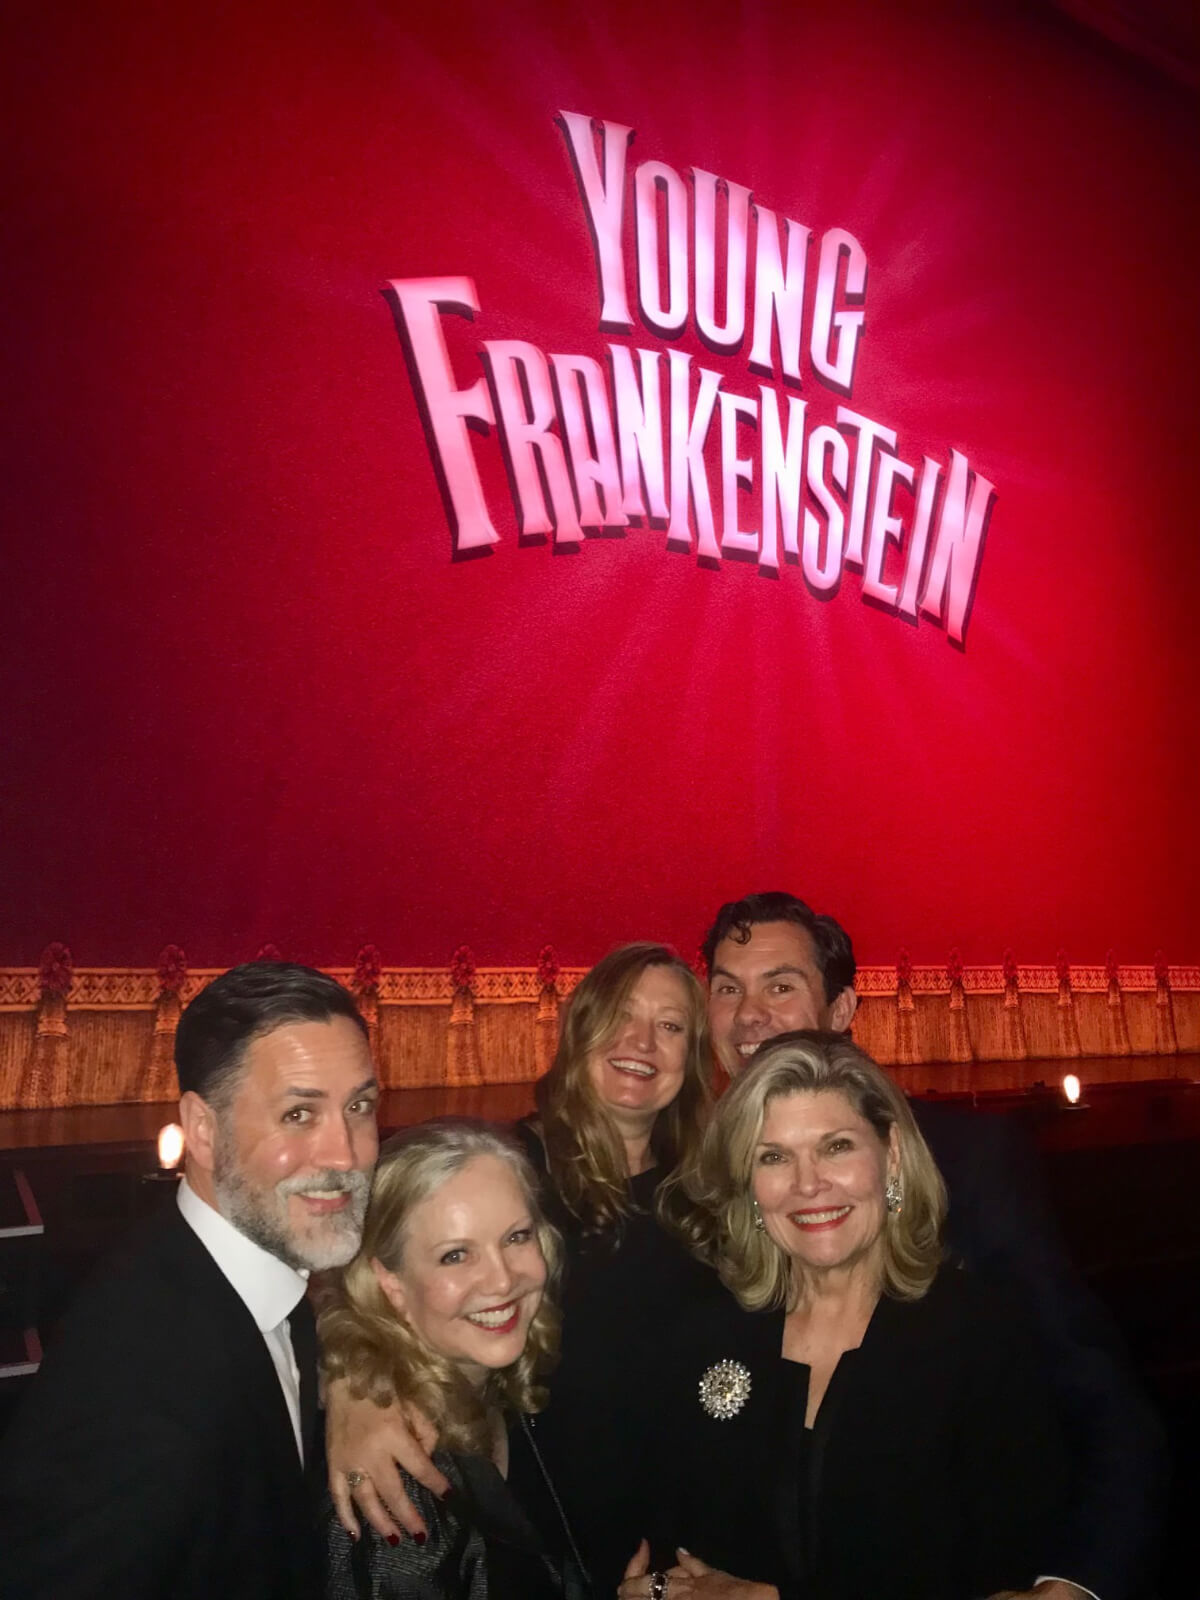 """Susan Stroman and four associates in front of the red curtain showing """"Young Frankenstein"""" in neon letters before the show starts on the West End."""